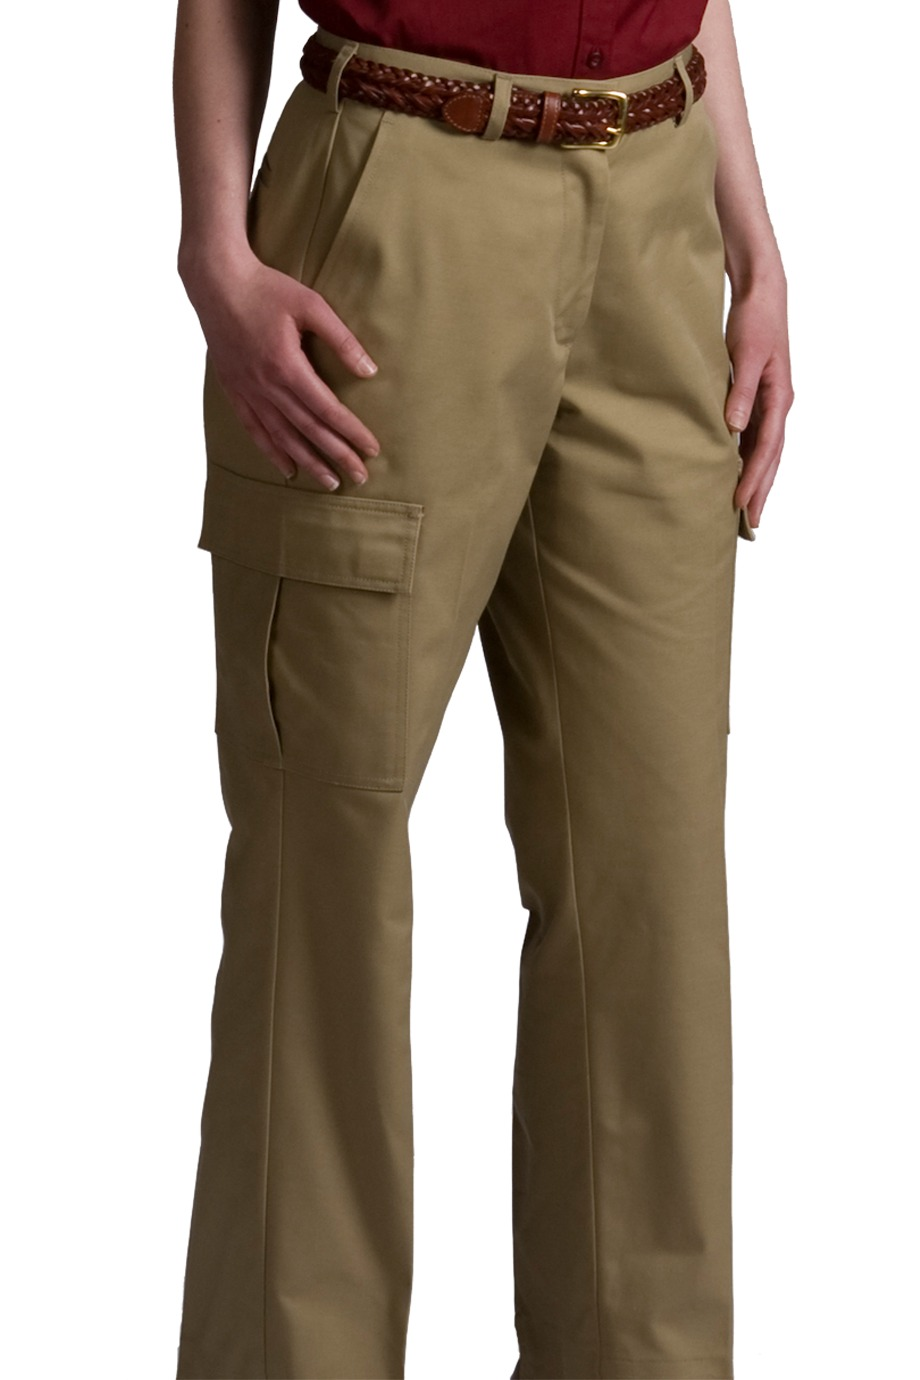 Edwards Garment 8568 - Women's Utility Cargo Pant